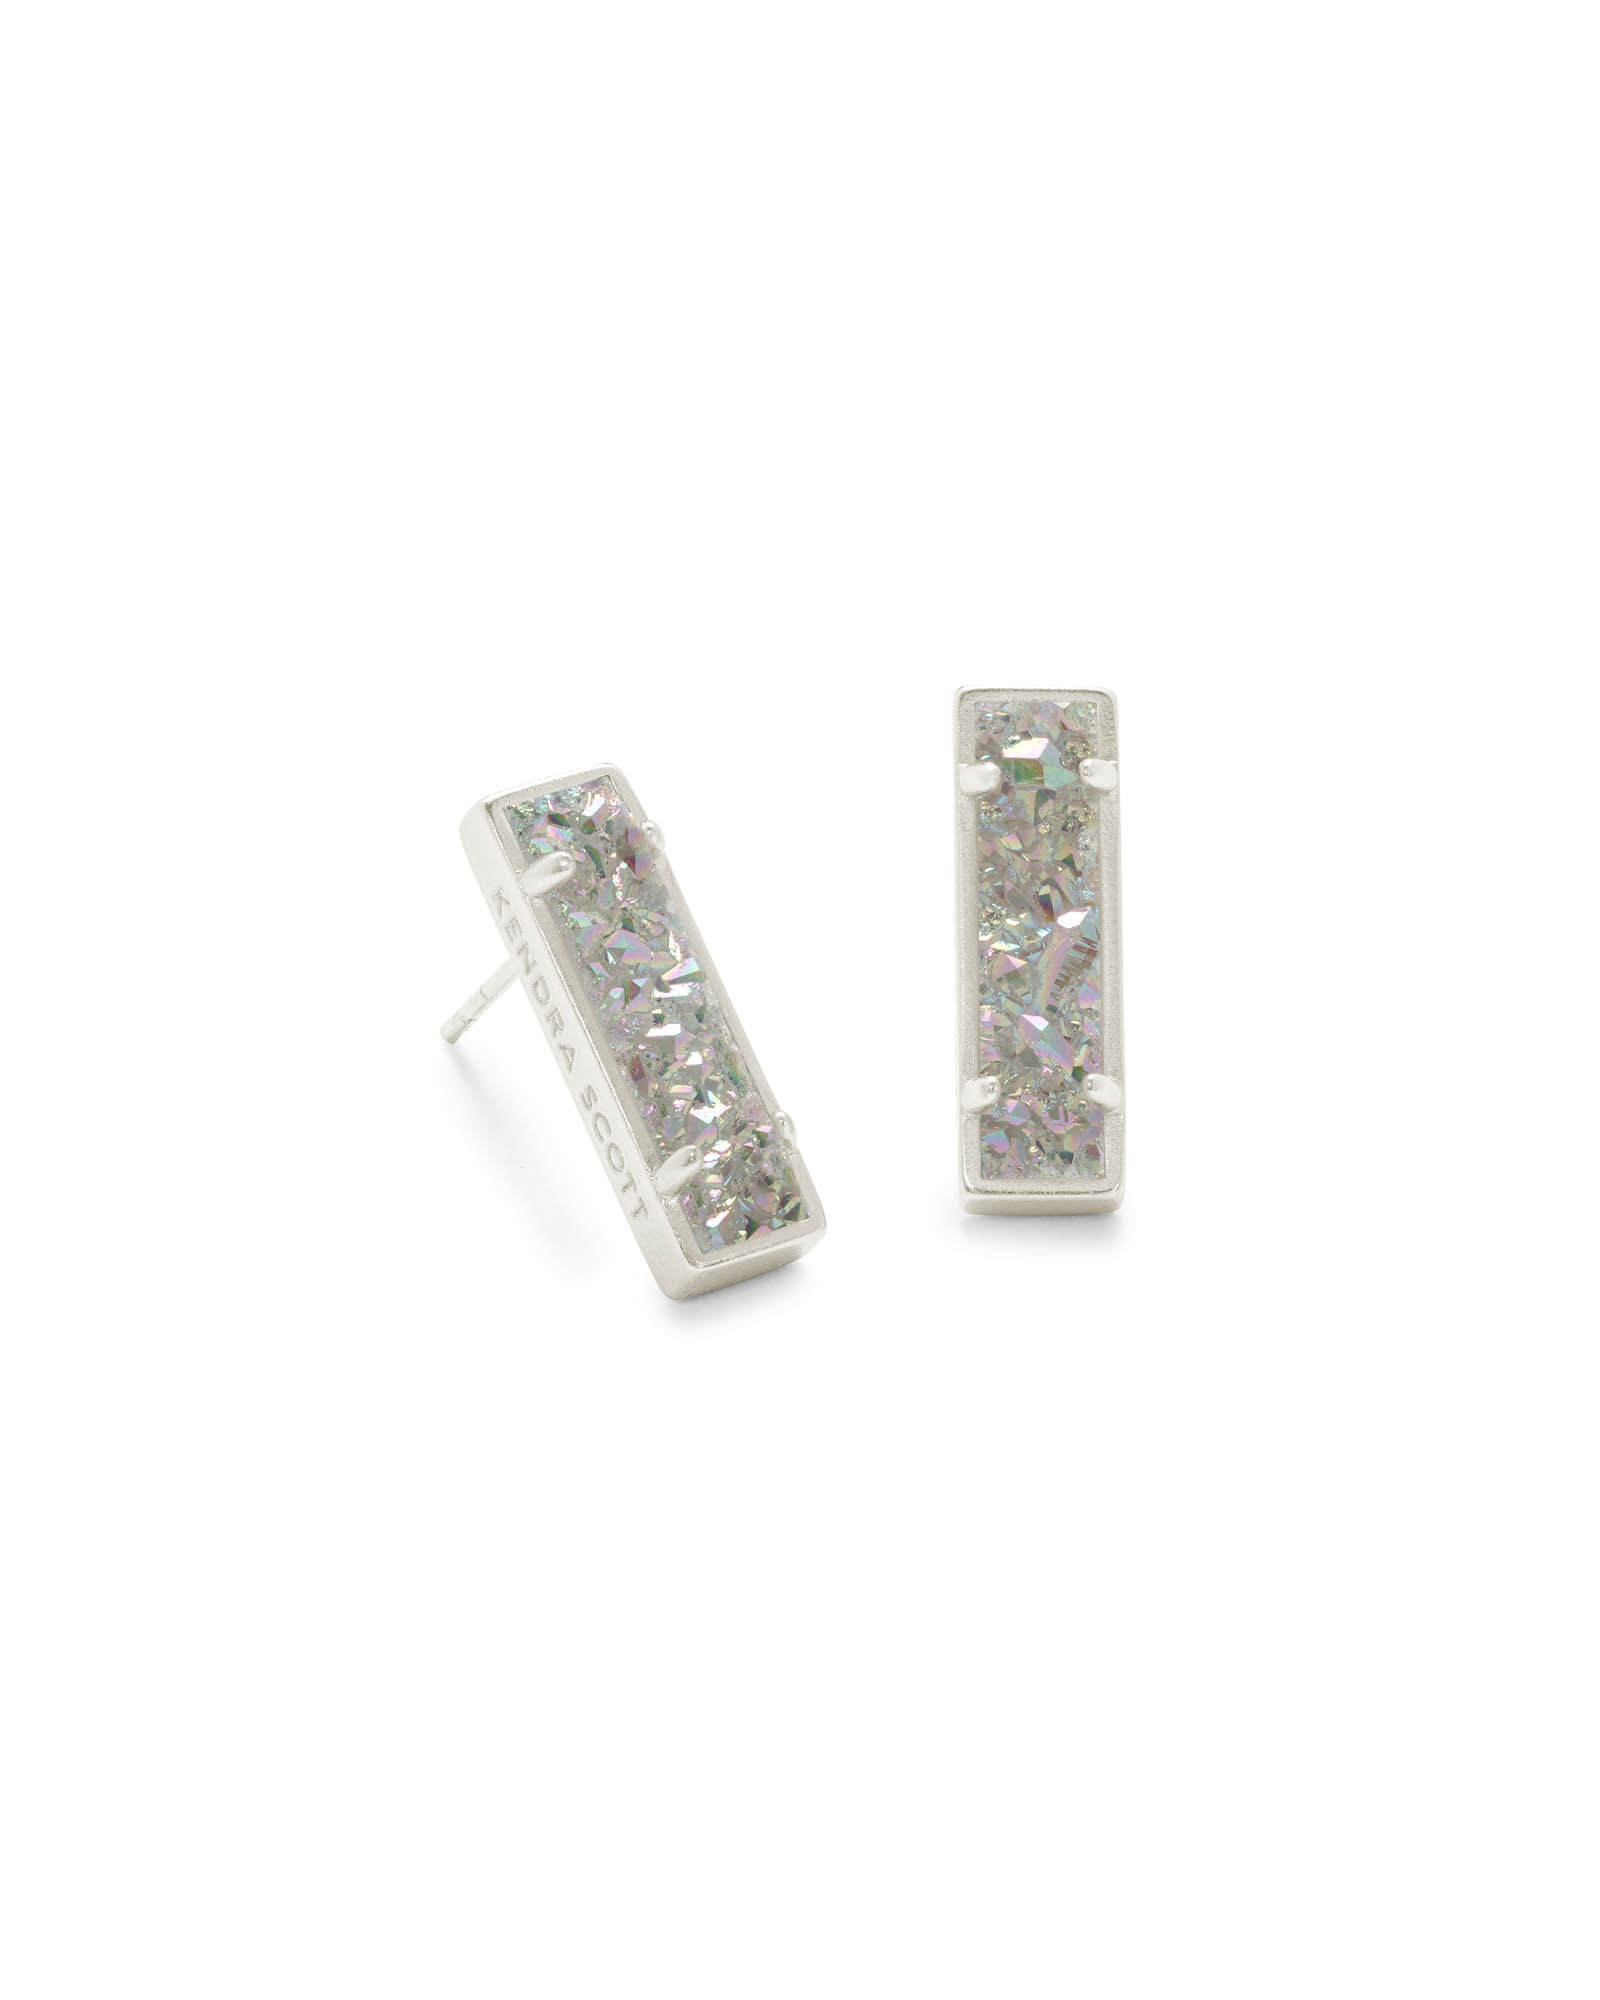 Lady Silver Stud Earrings in Iridescent Drusy